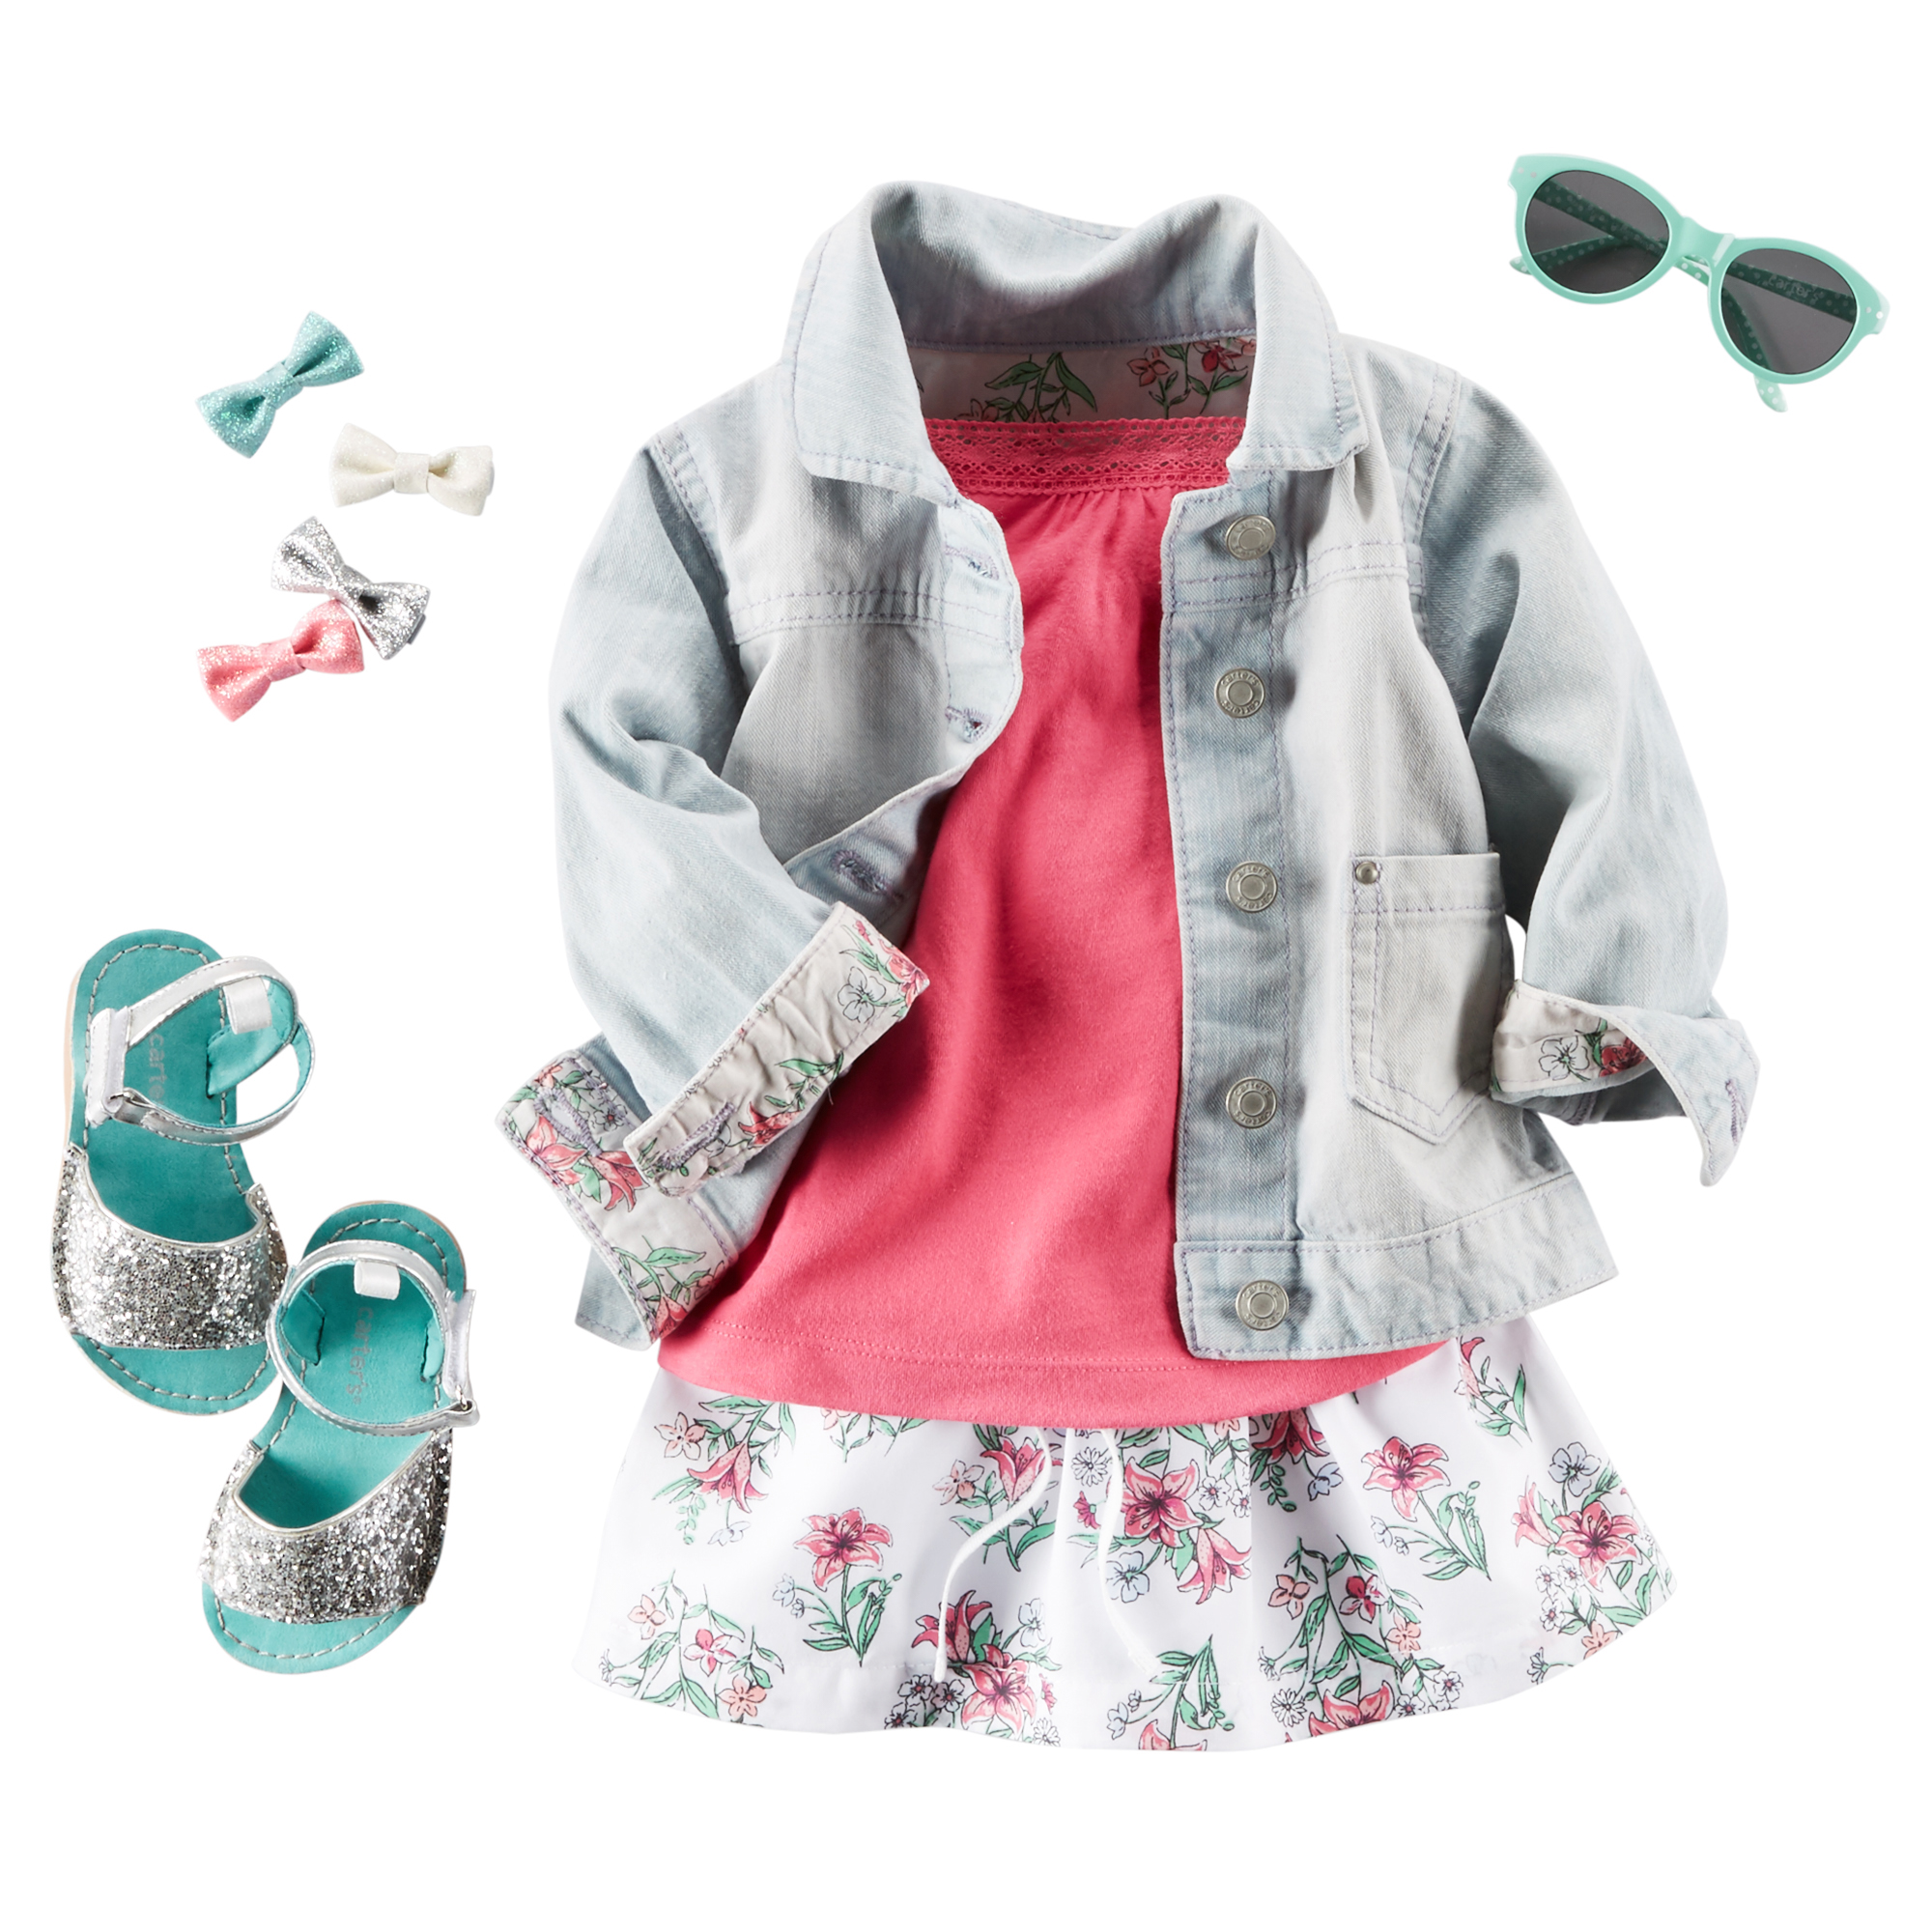 Summer Outfits for Little Girls Outfit Ideas HQ